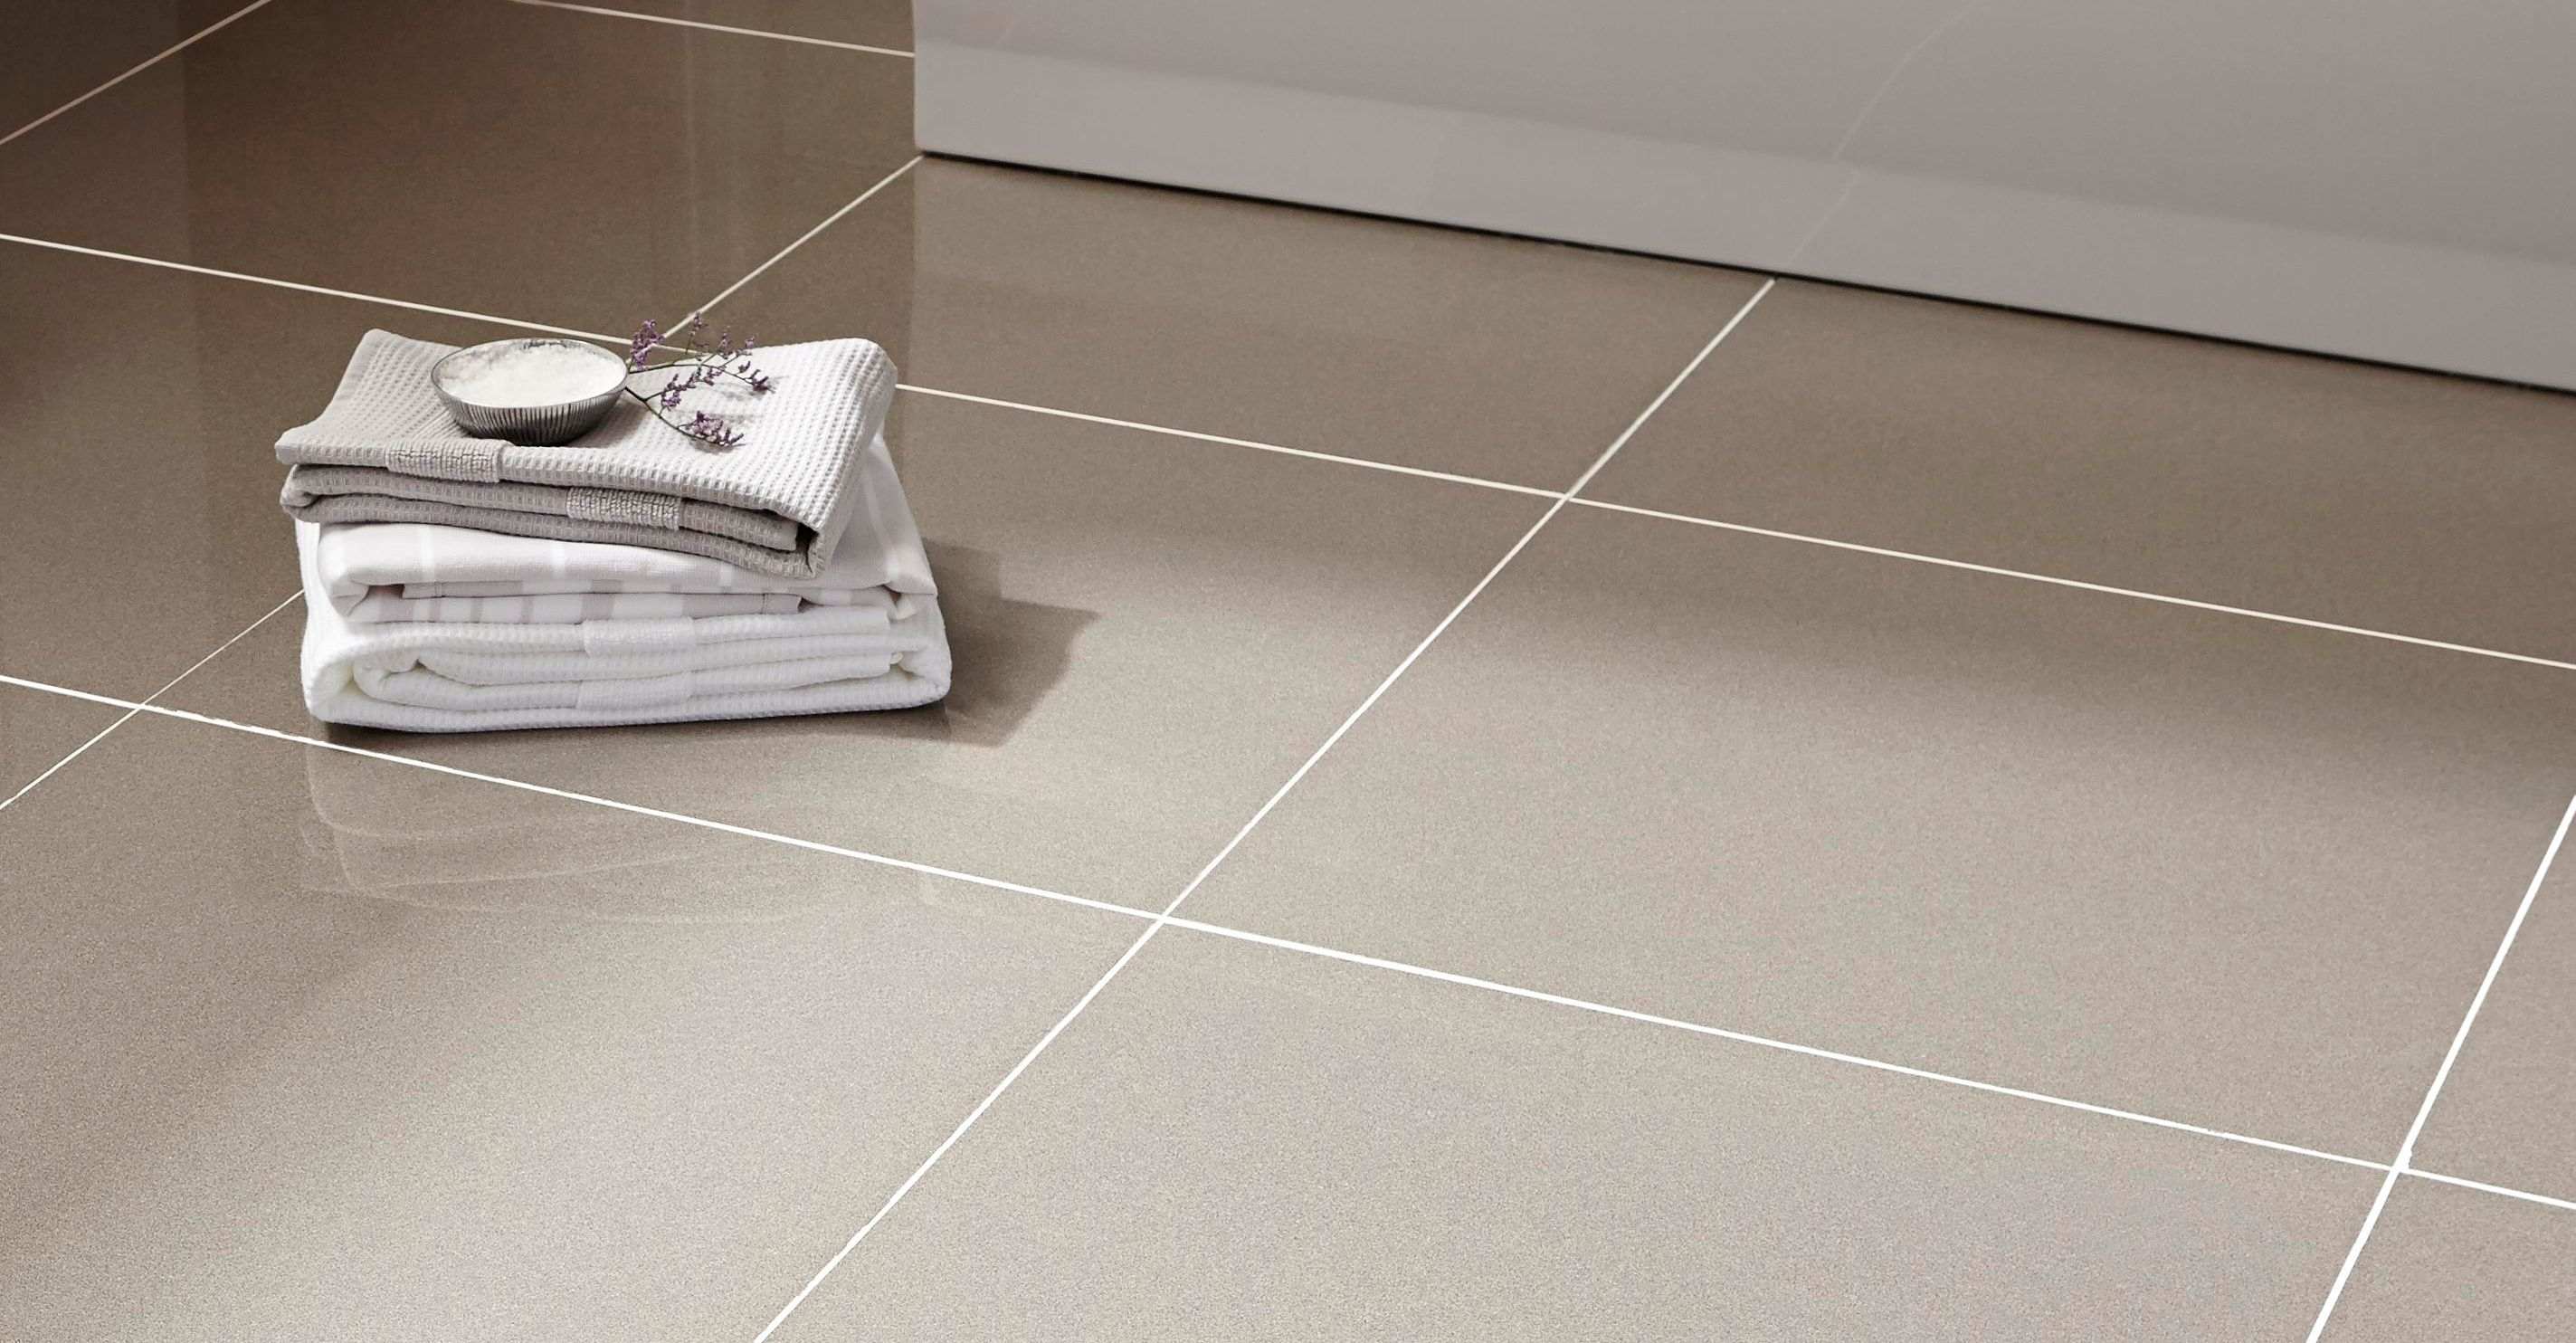 10 Wonderful Tile Flooring Ideas For Bathroom best 15 bathroom flooring ideas jessica paster 2021